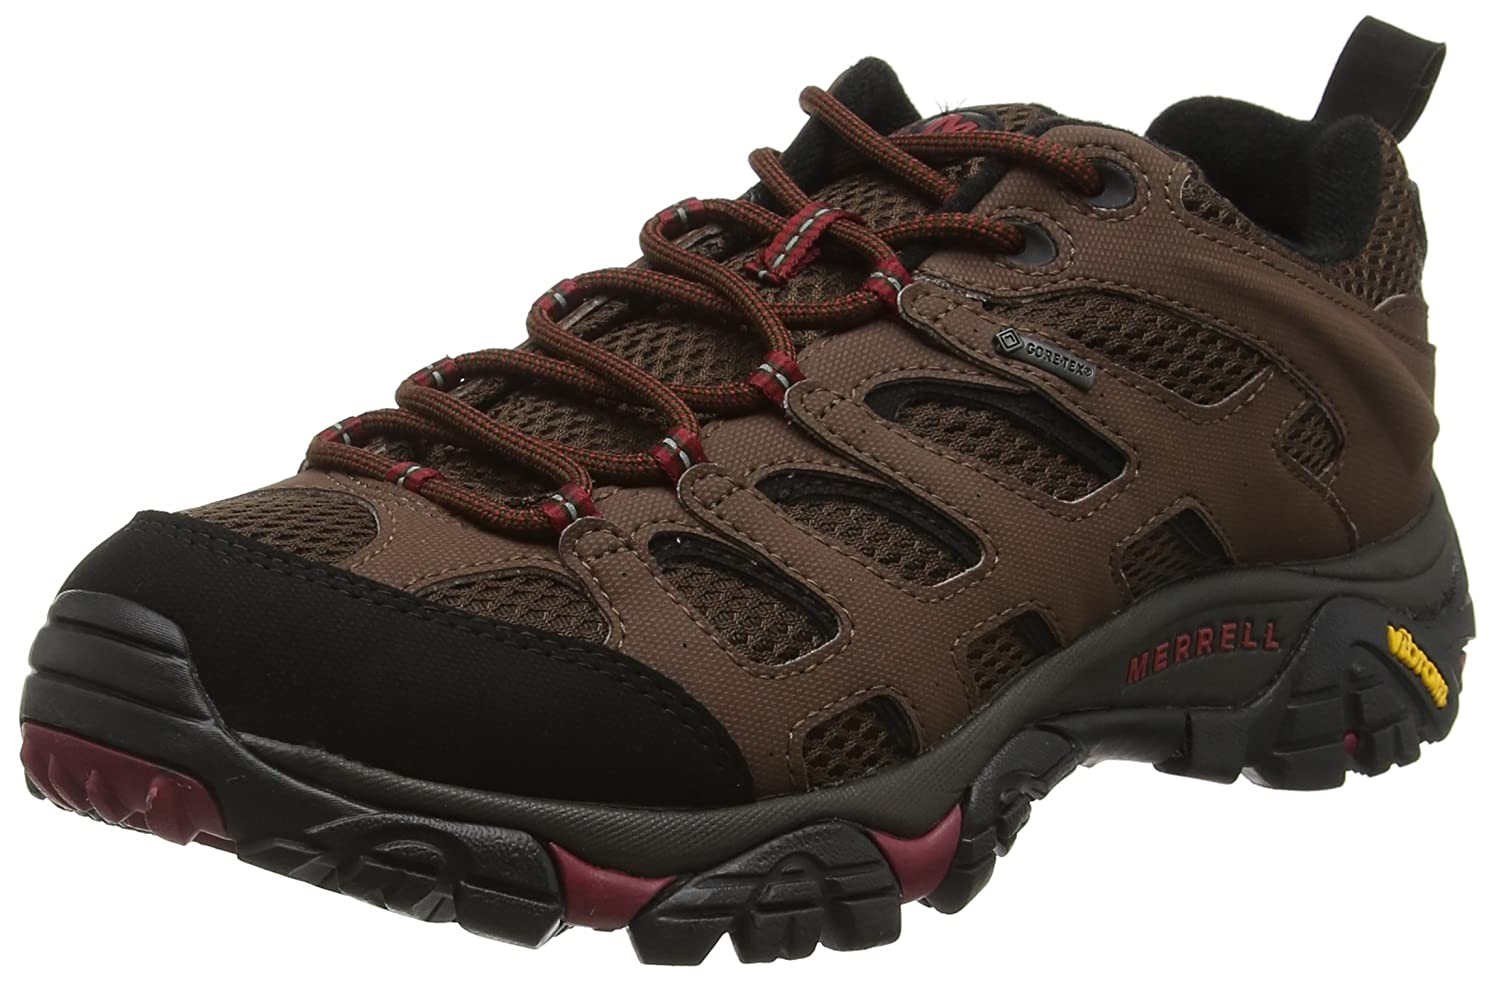 Merrell Men's Moab Gore-Tex Waterproof Hiking Shoe Merrell Footwear Moab Gore-Tex-M